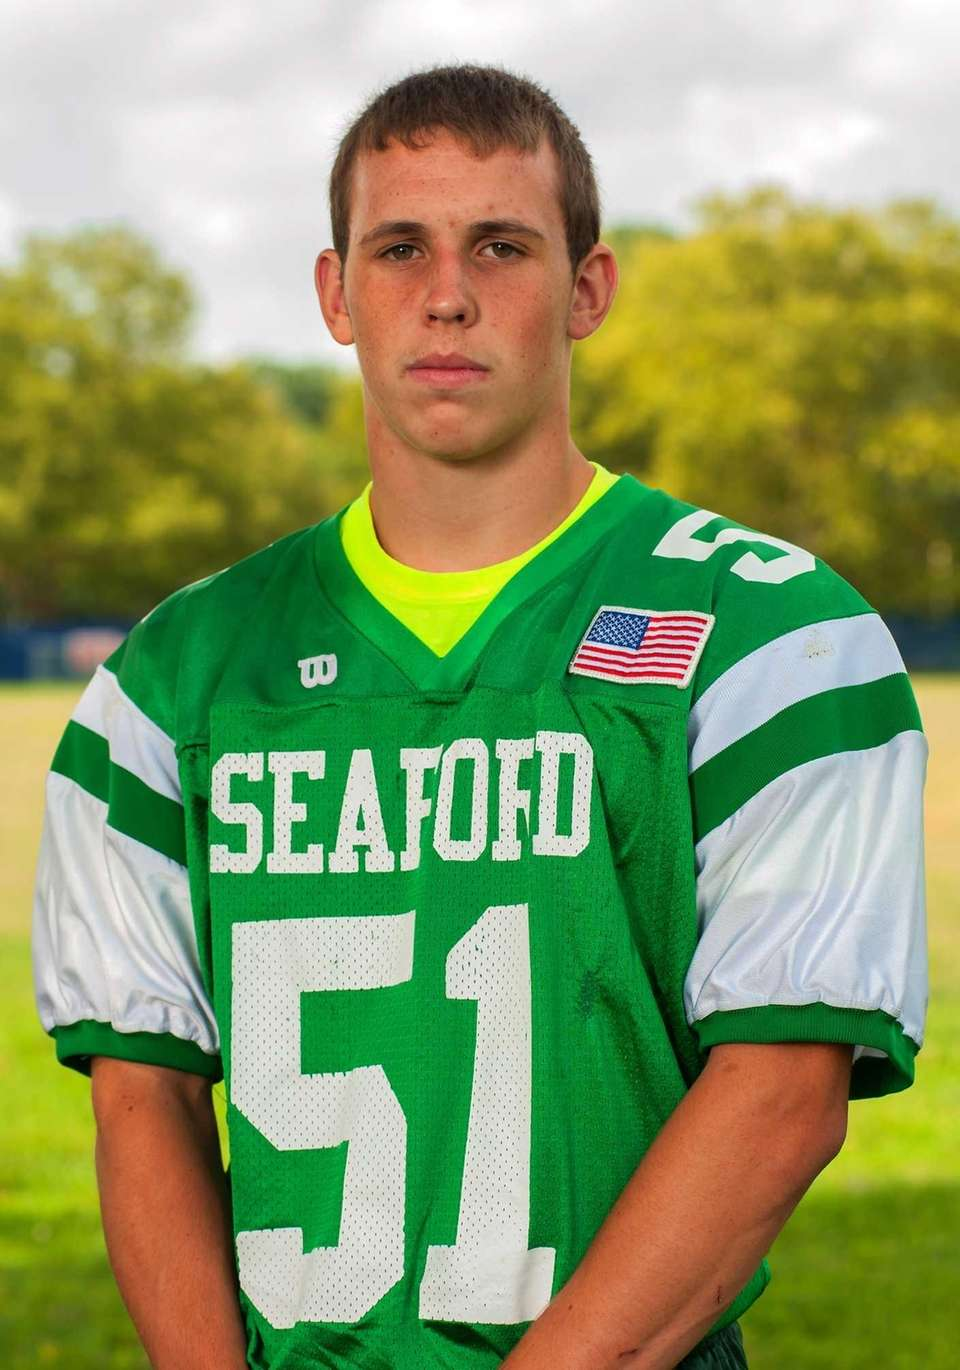 Seaford, senior Center/linebacker Small but strong center Jack